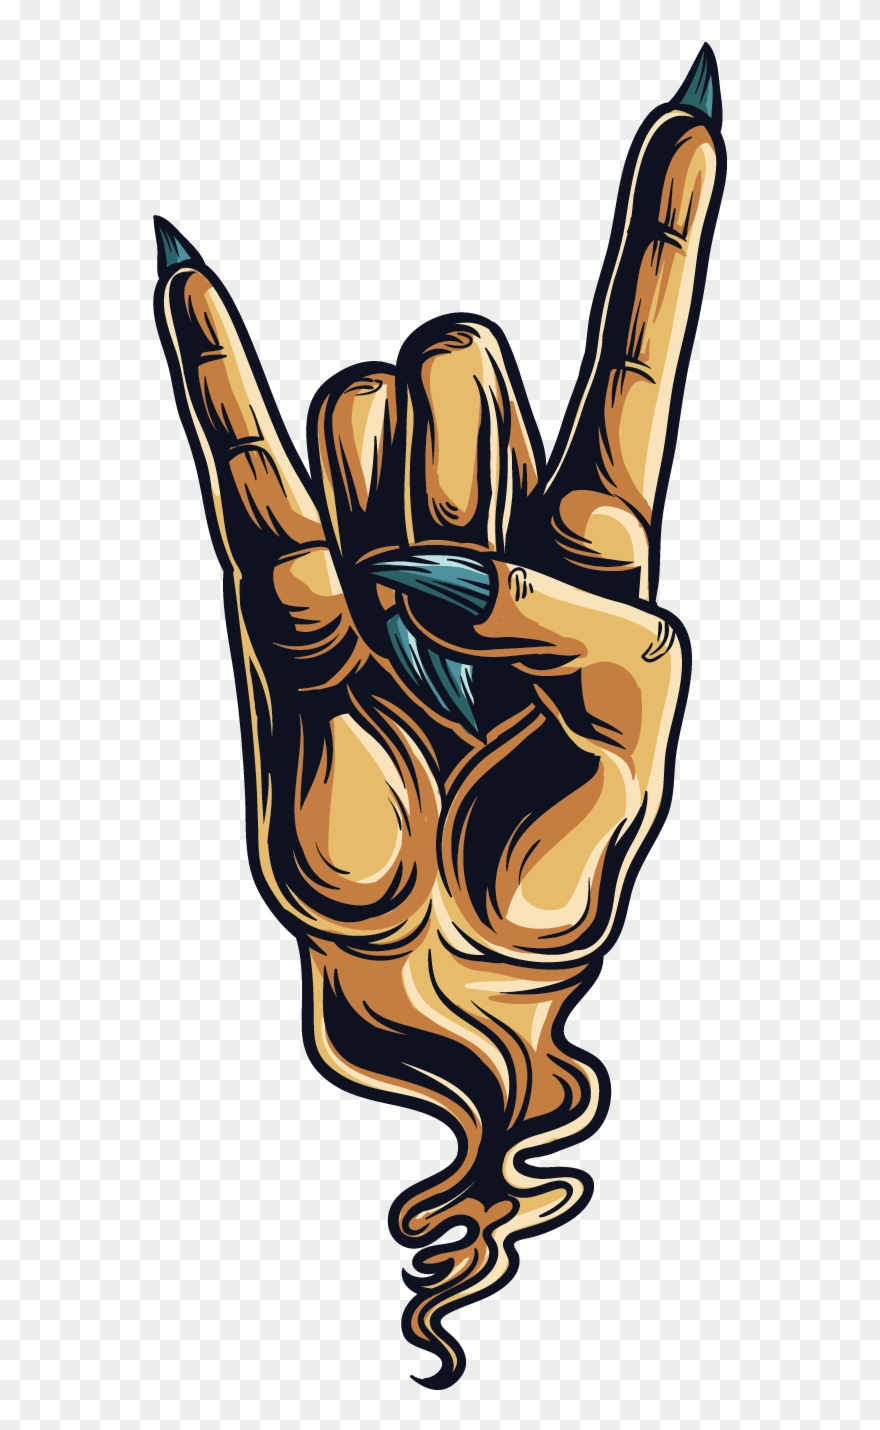 Sign Of The Horns Devil Hand Gesture Sticker.